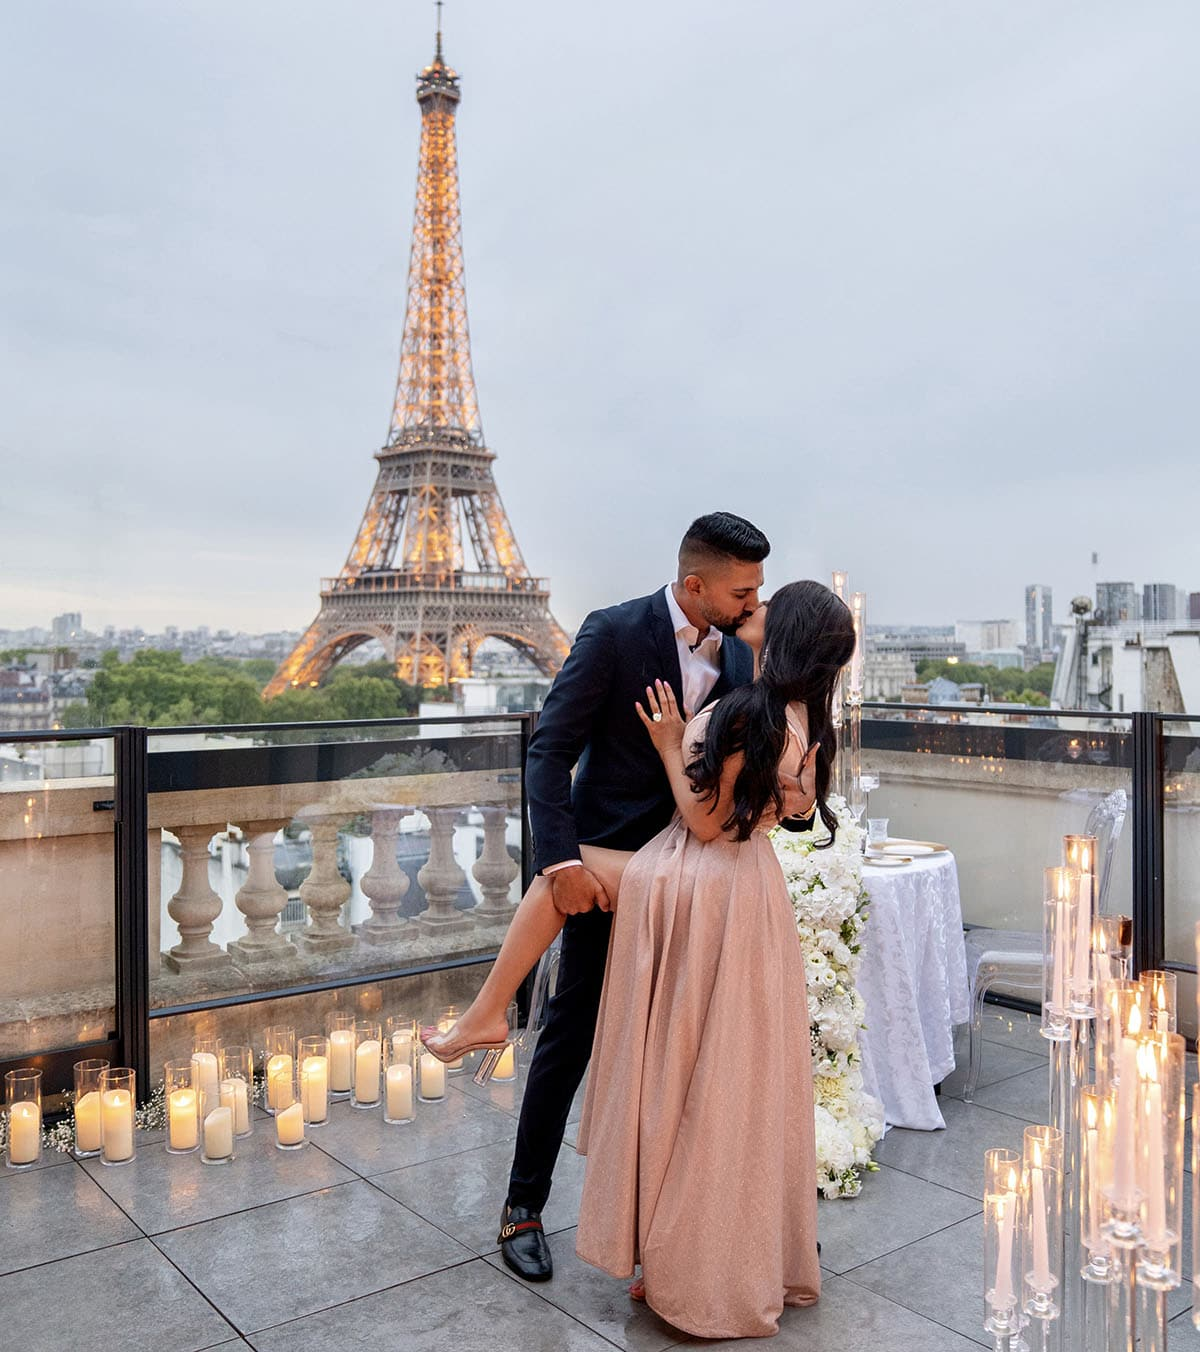 Dhar Mann proposing to Laura G in Paris France after the proposal